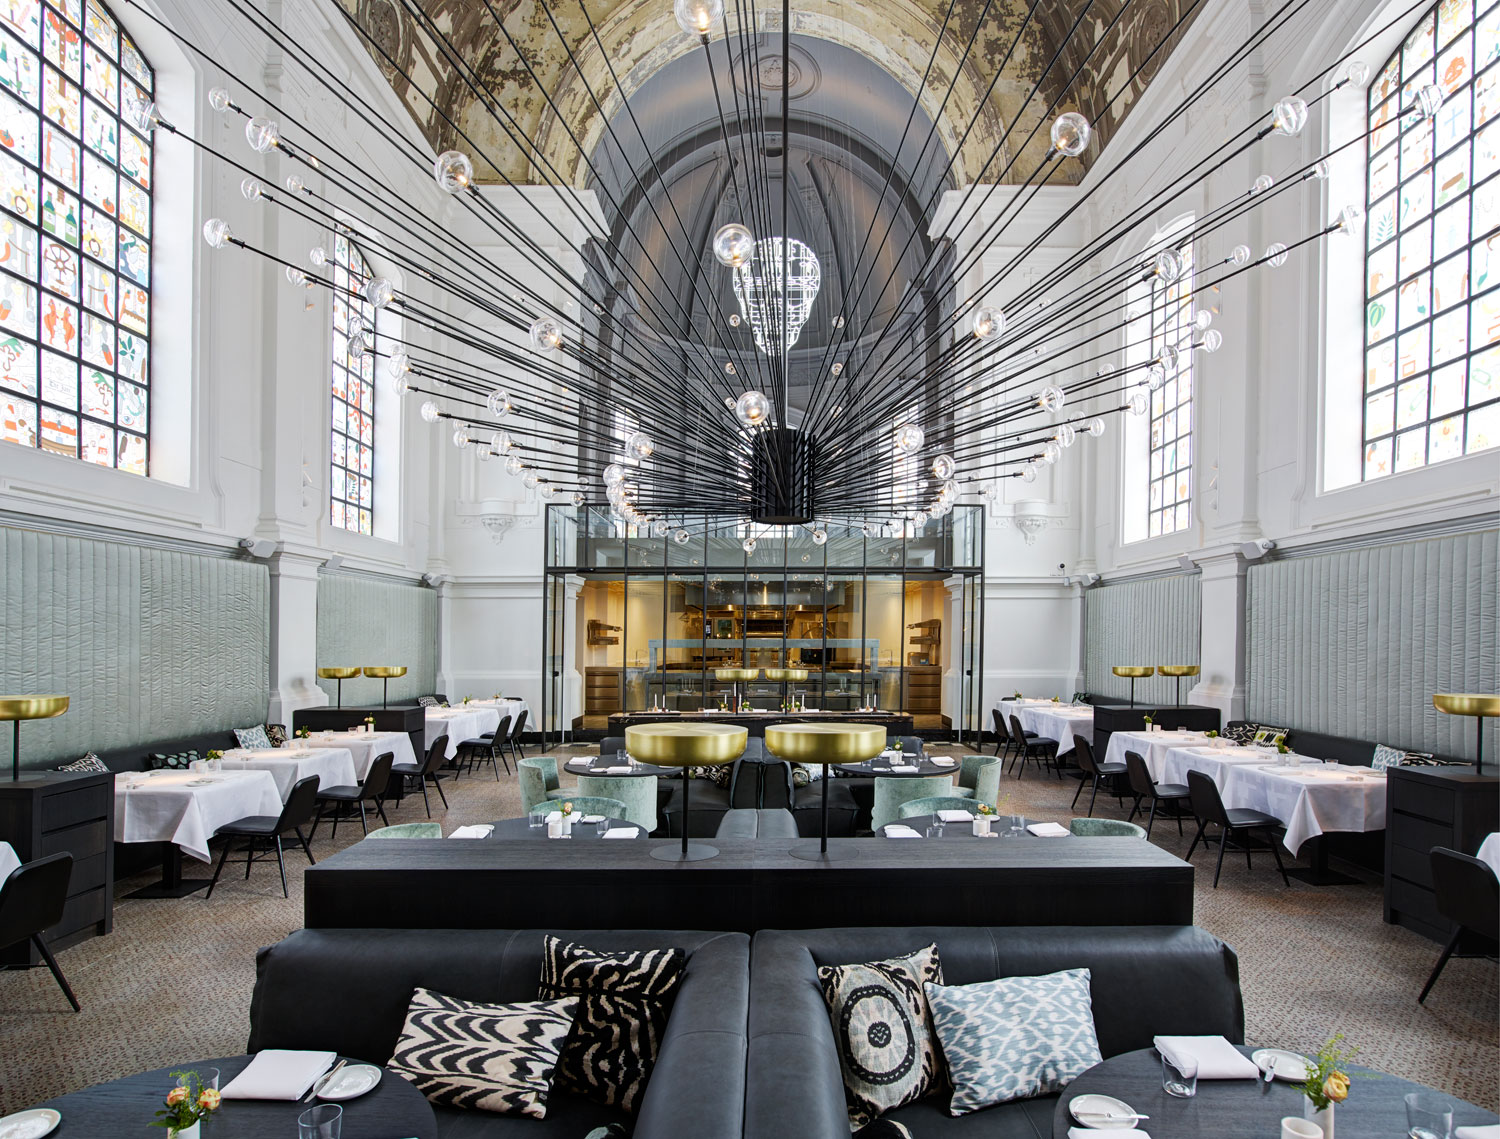 The Jane Restaurant in Antwerp // Divine Fine Dining by Piet Boon.